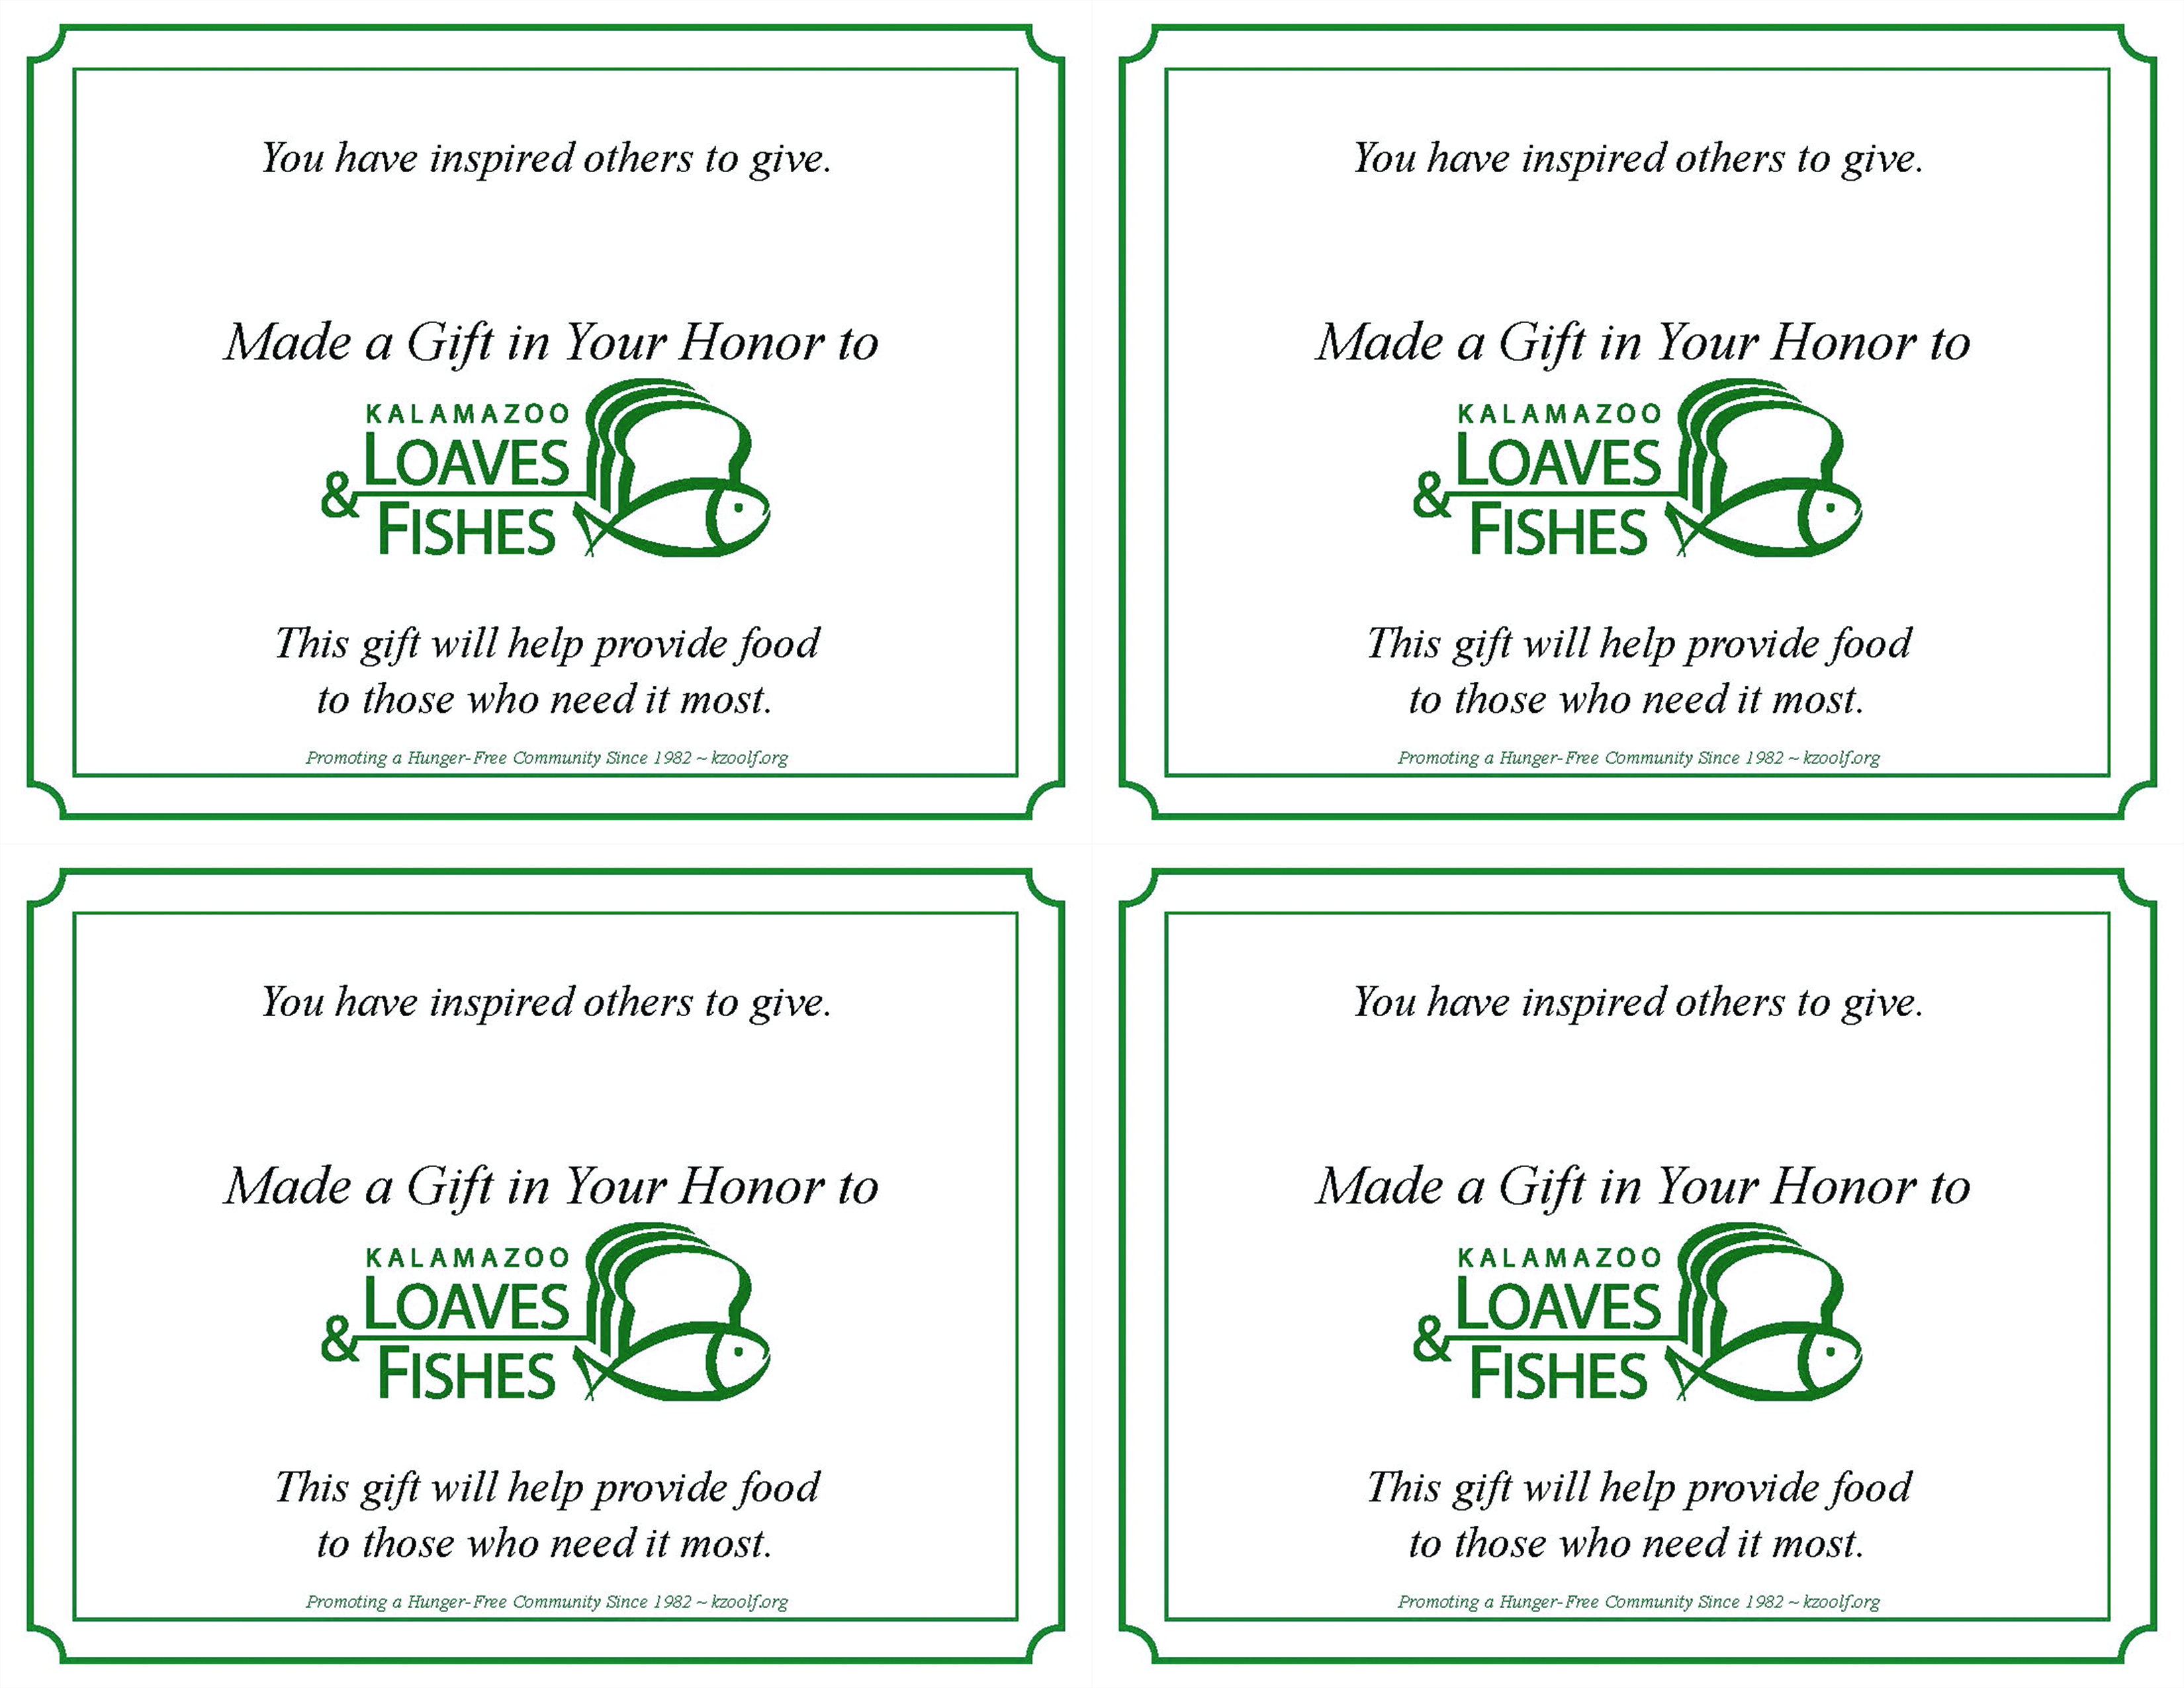 Donation Recognition Cards 2